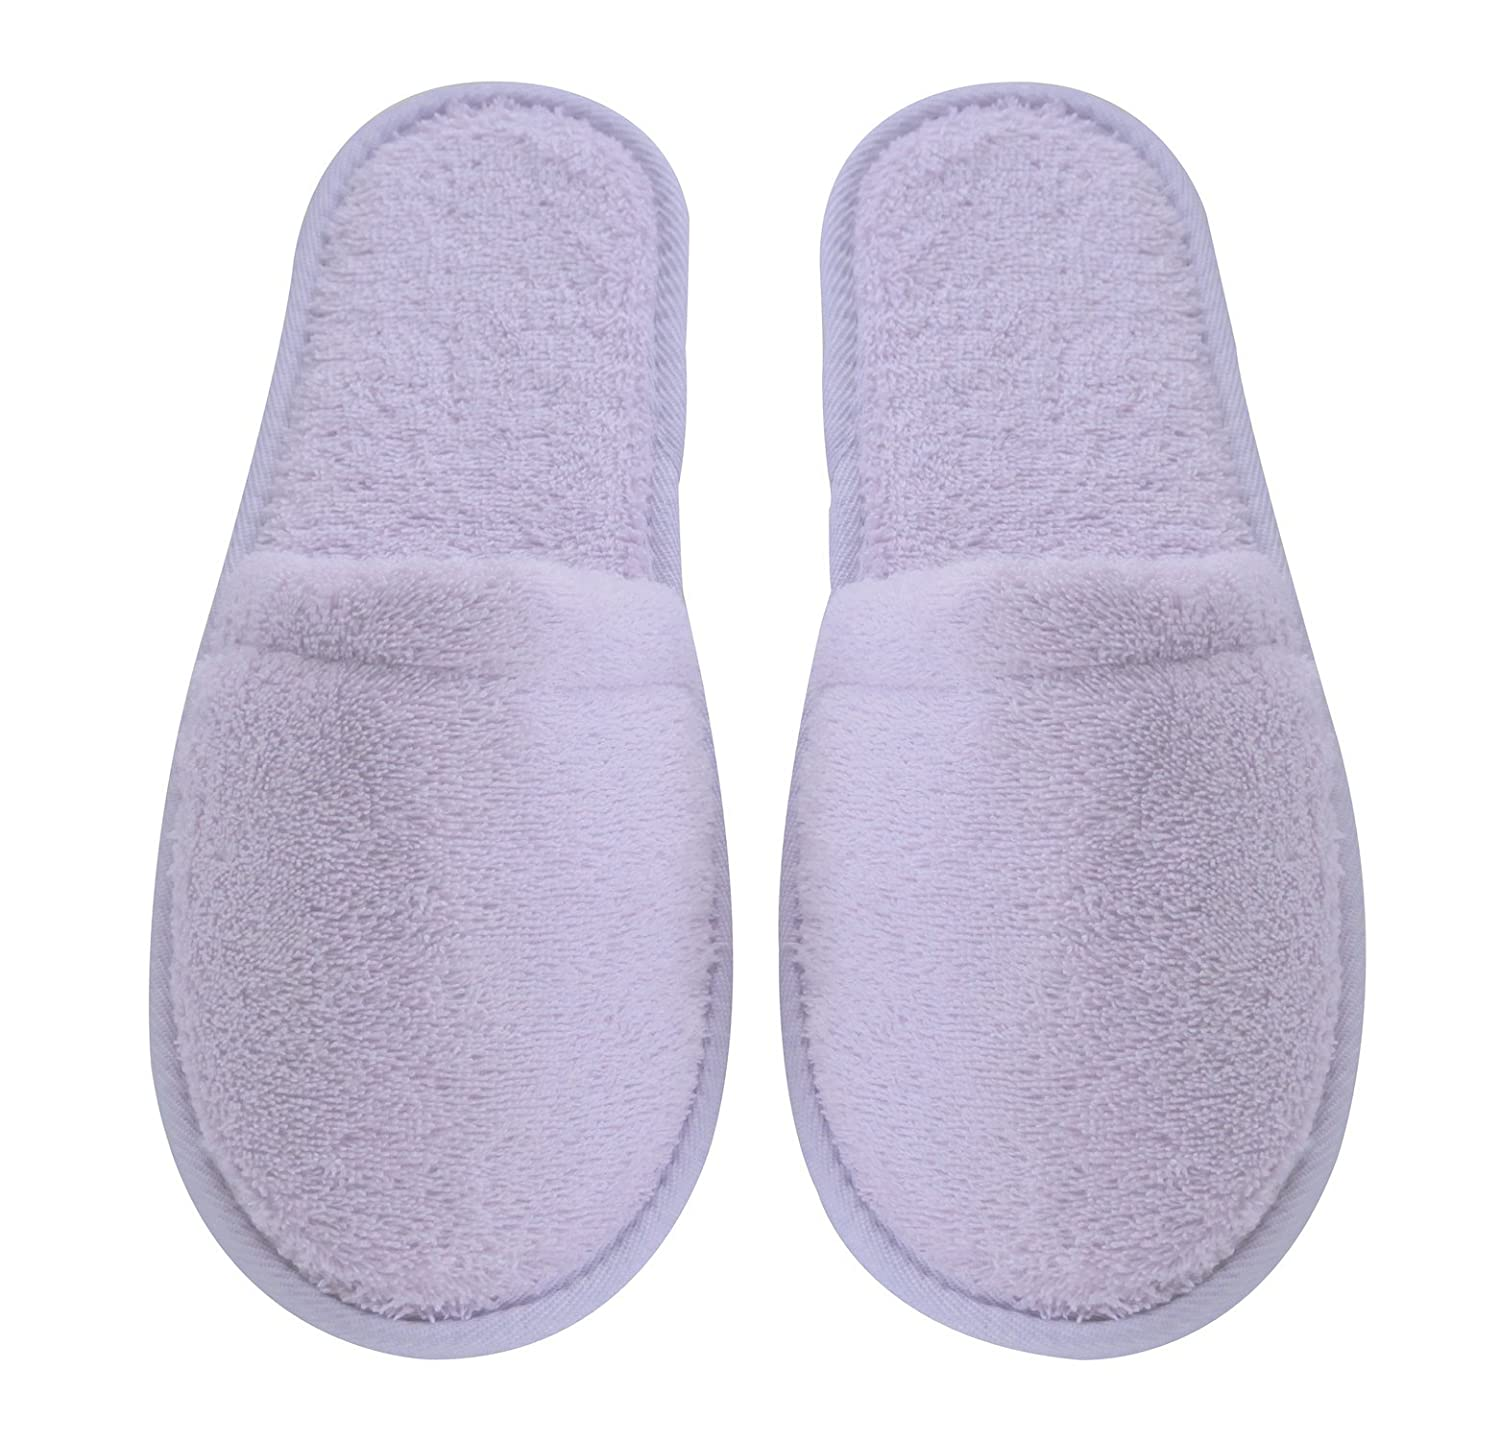 Arus Women's Turkish Organic Terry Cotton Cloth Spa Slippers One Size Fits Most, Black with Black Sole WSLP-BLK-BLK-SM